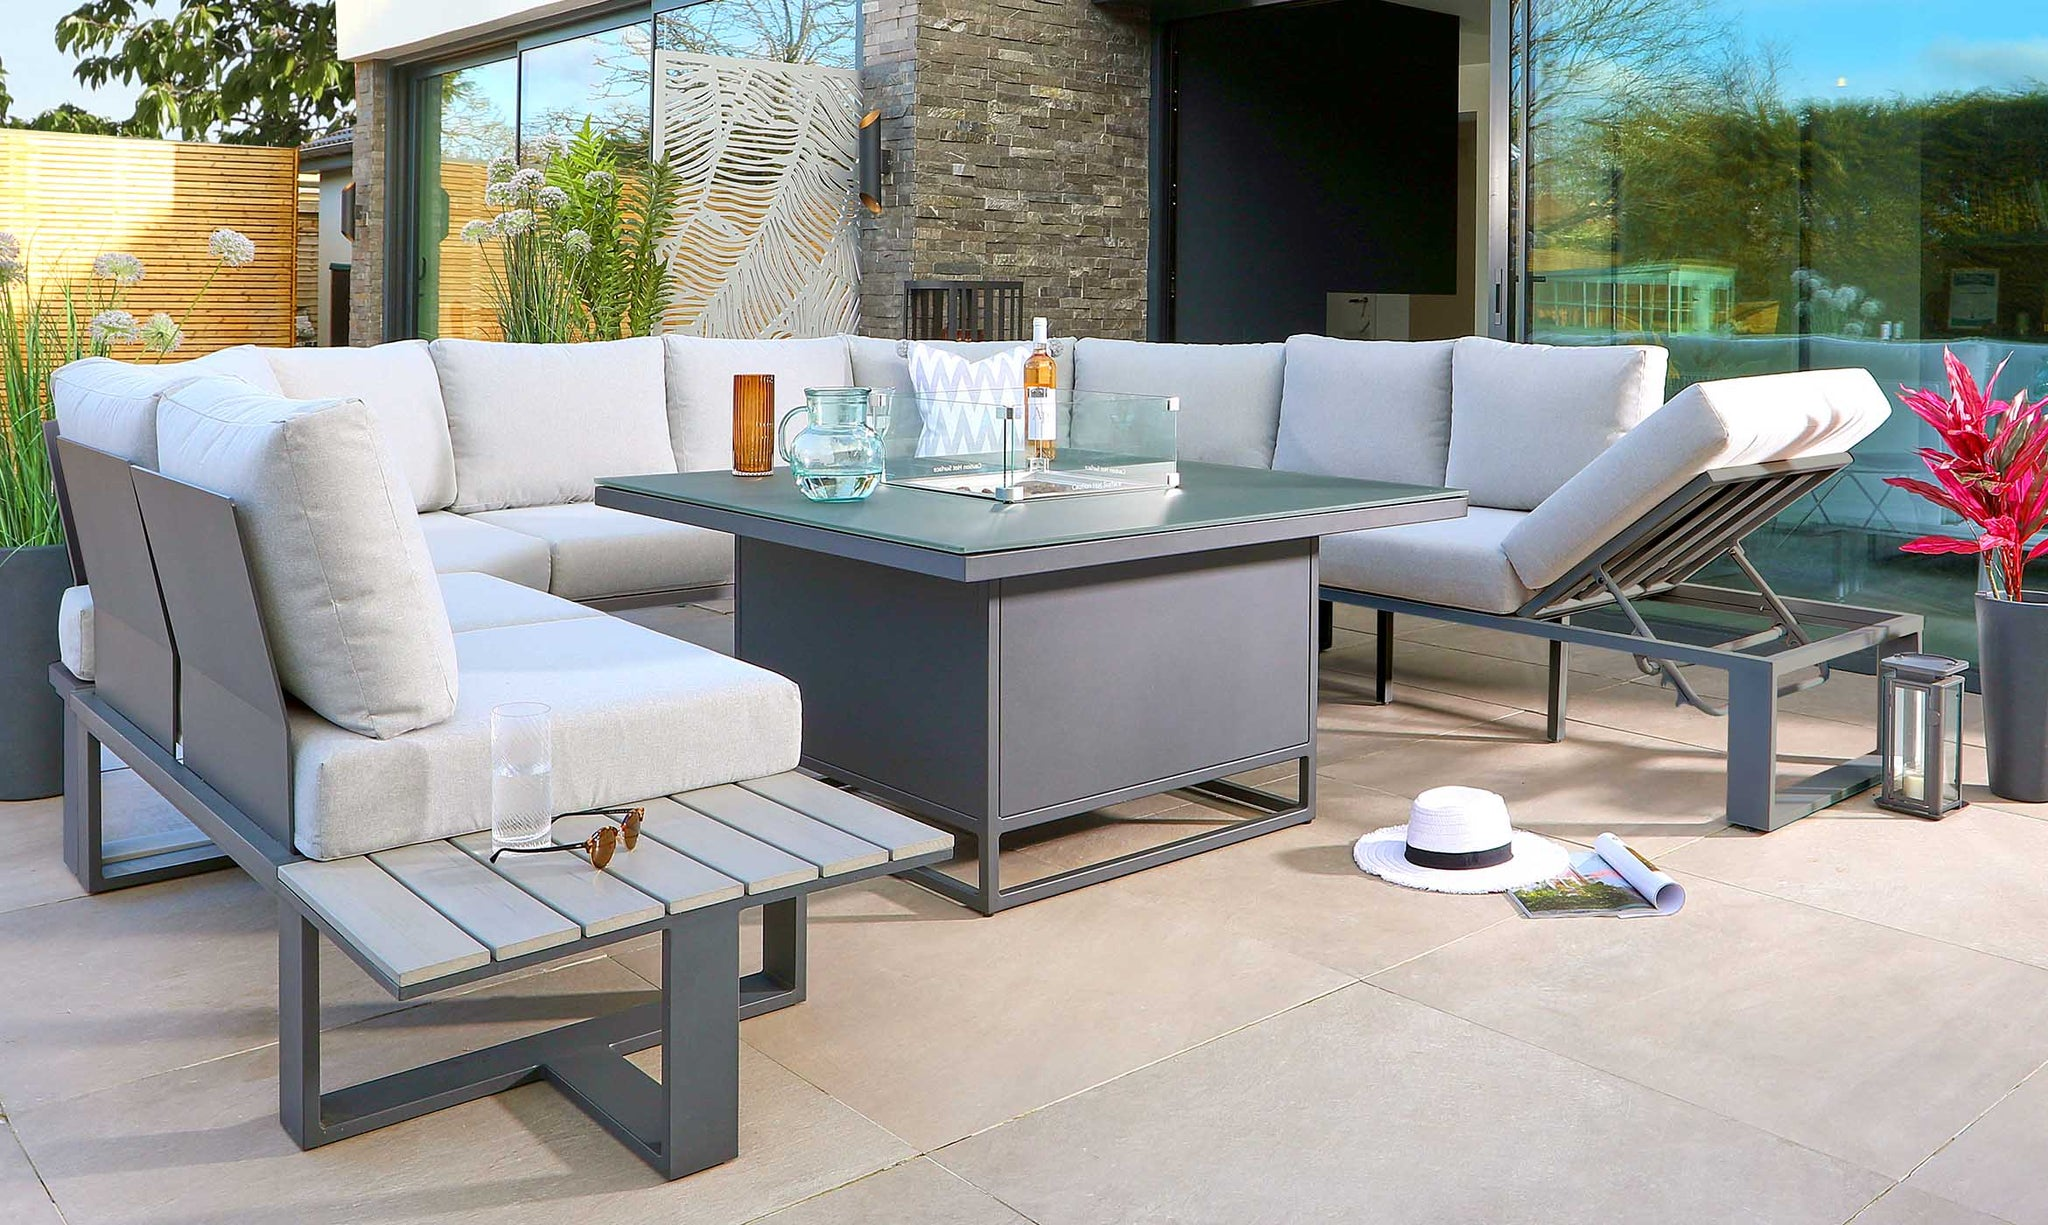 Danetti Outdoor: Get to Know our NEW Range of Modern Garden Furniture